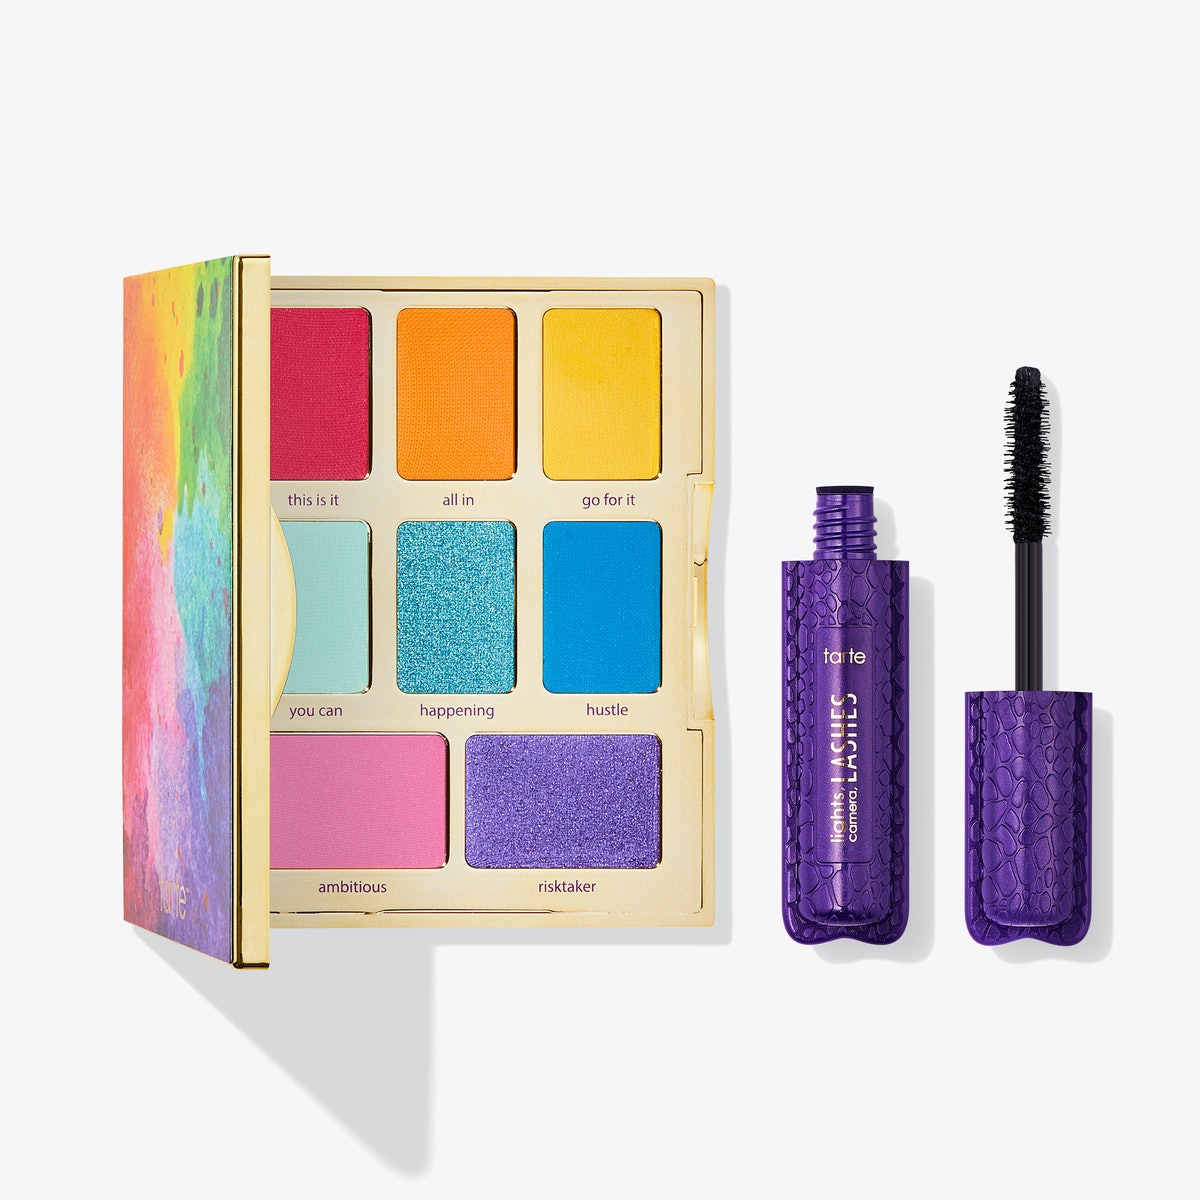 Tarte x Jessie Paege's Let It Rain-Bow Palette Will Donate $25,000 To The Trevor Project